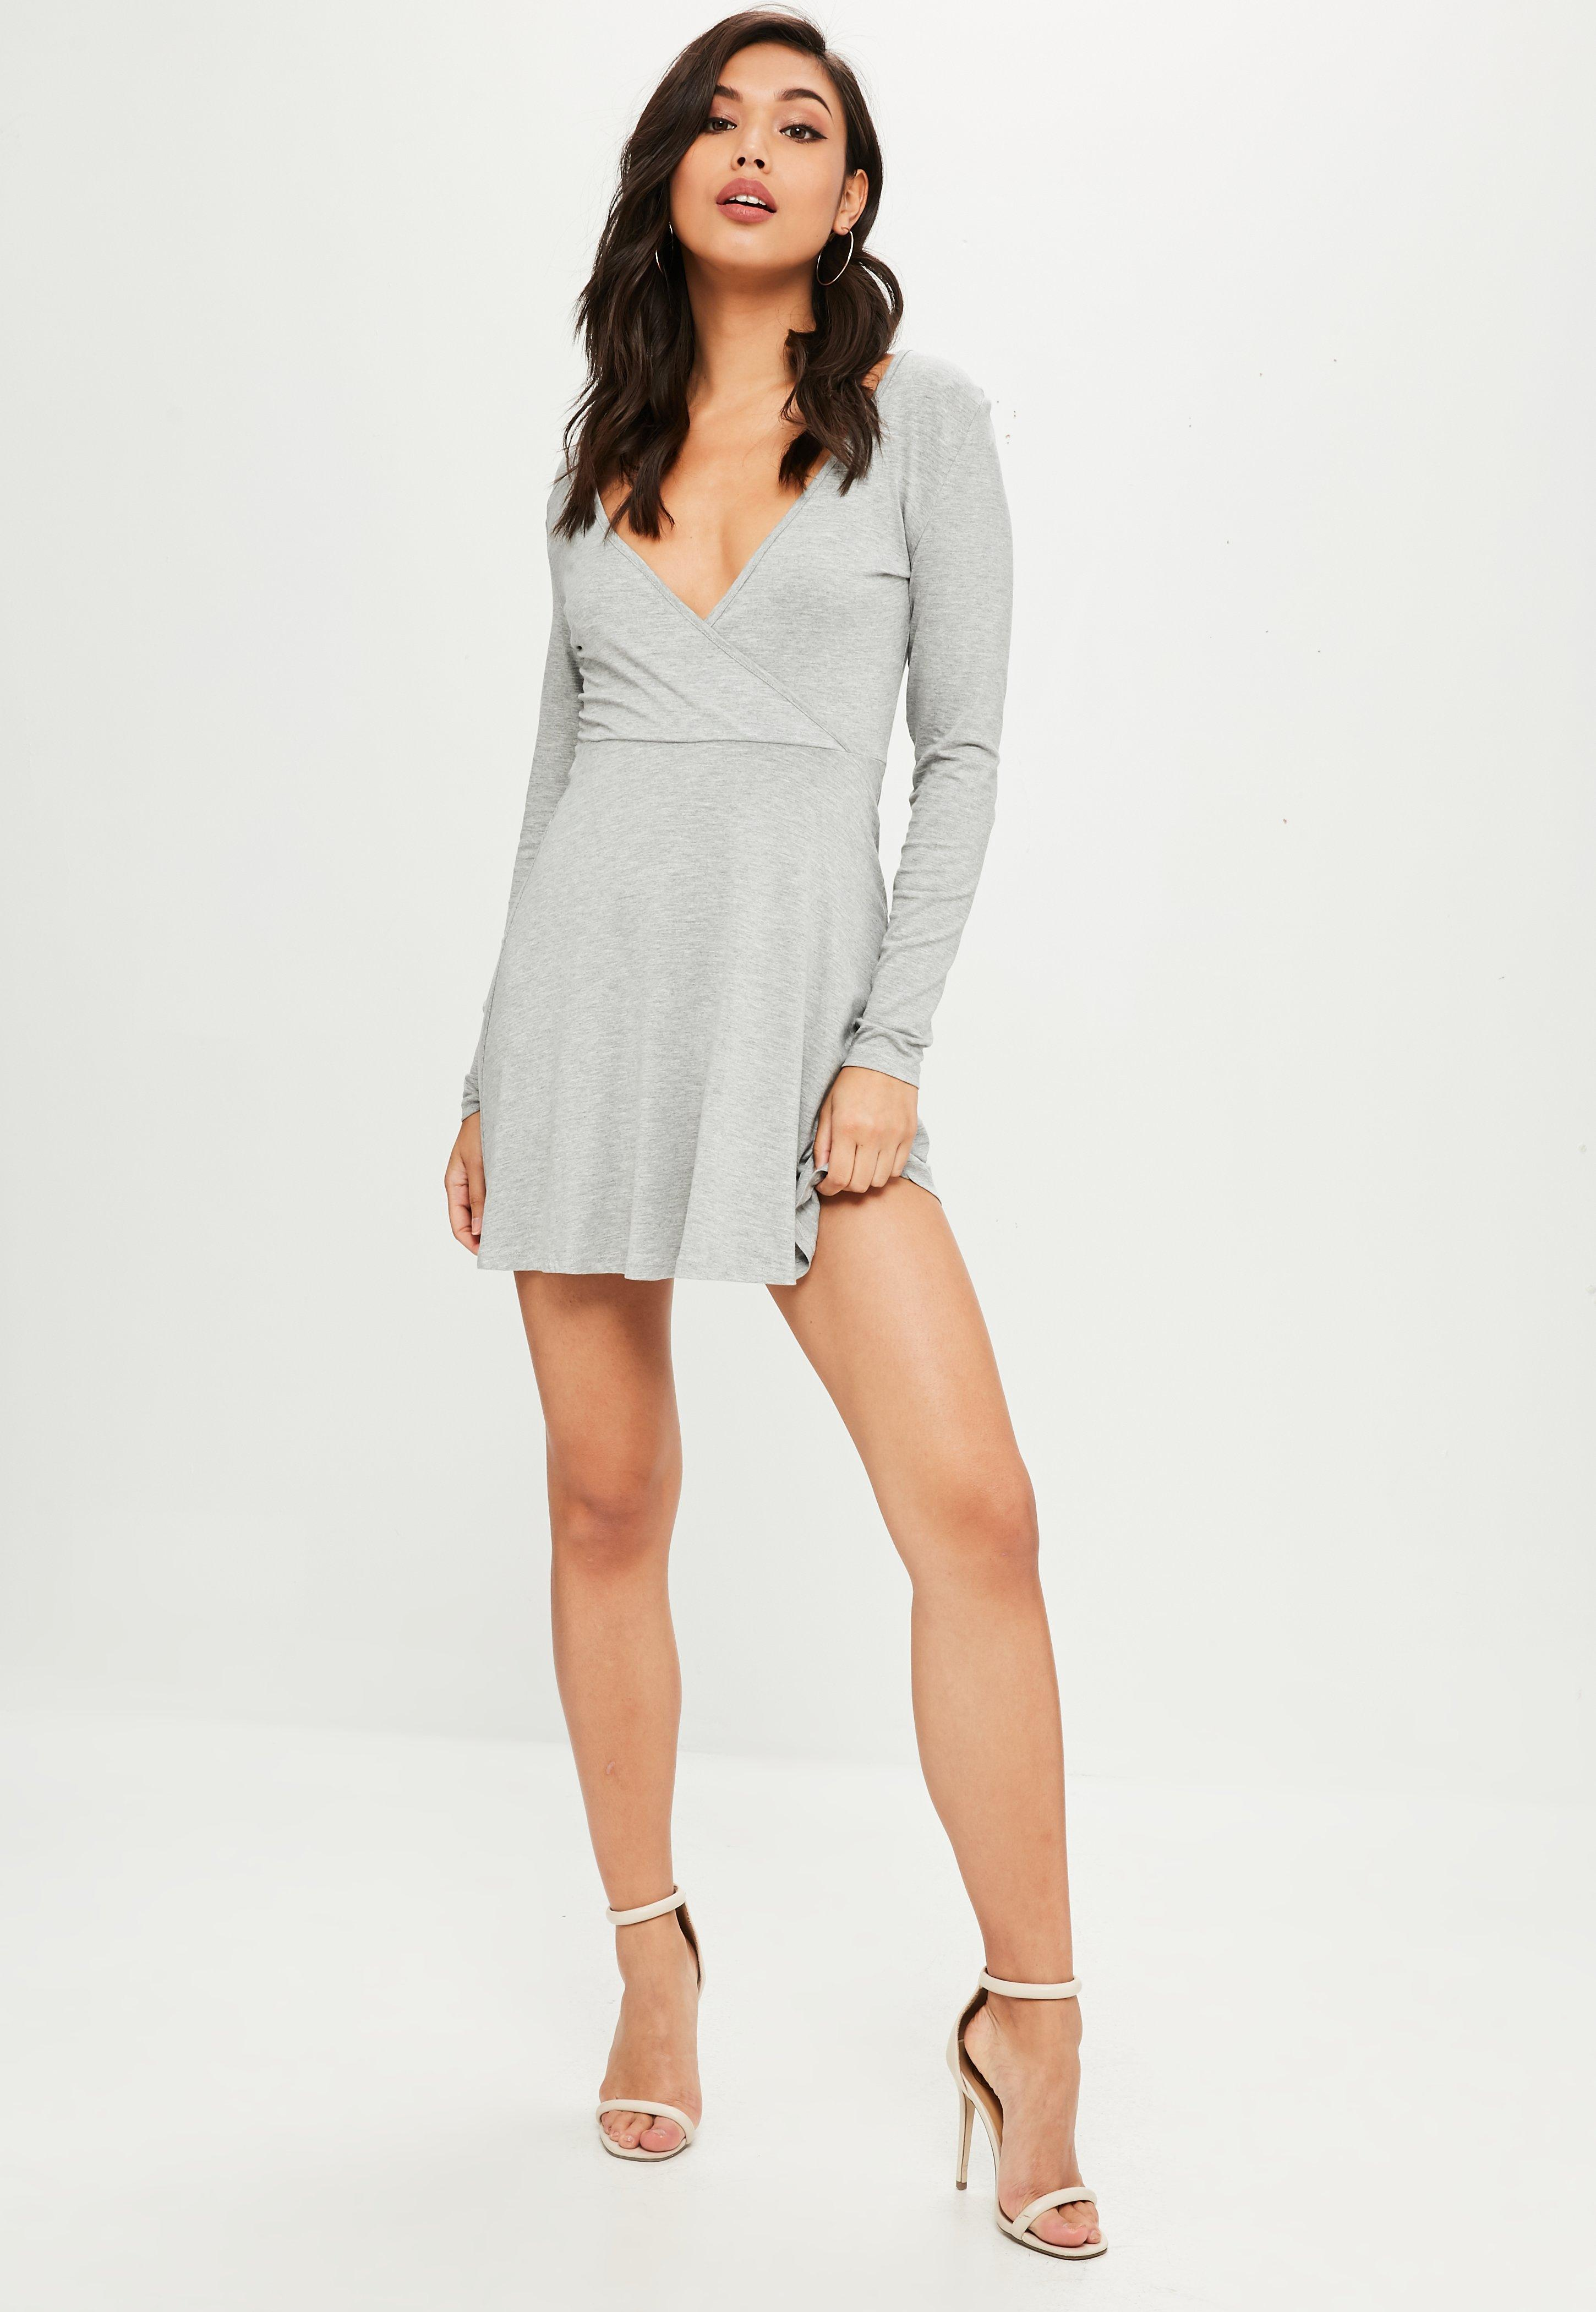 Lyst - Missguided Grey Long Sleeve Jersey Wrap Skater Dress in Gray 4d7d58ca6